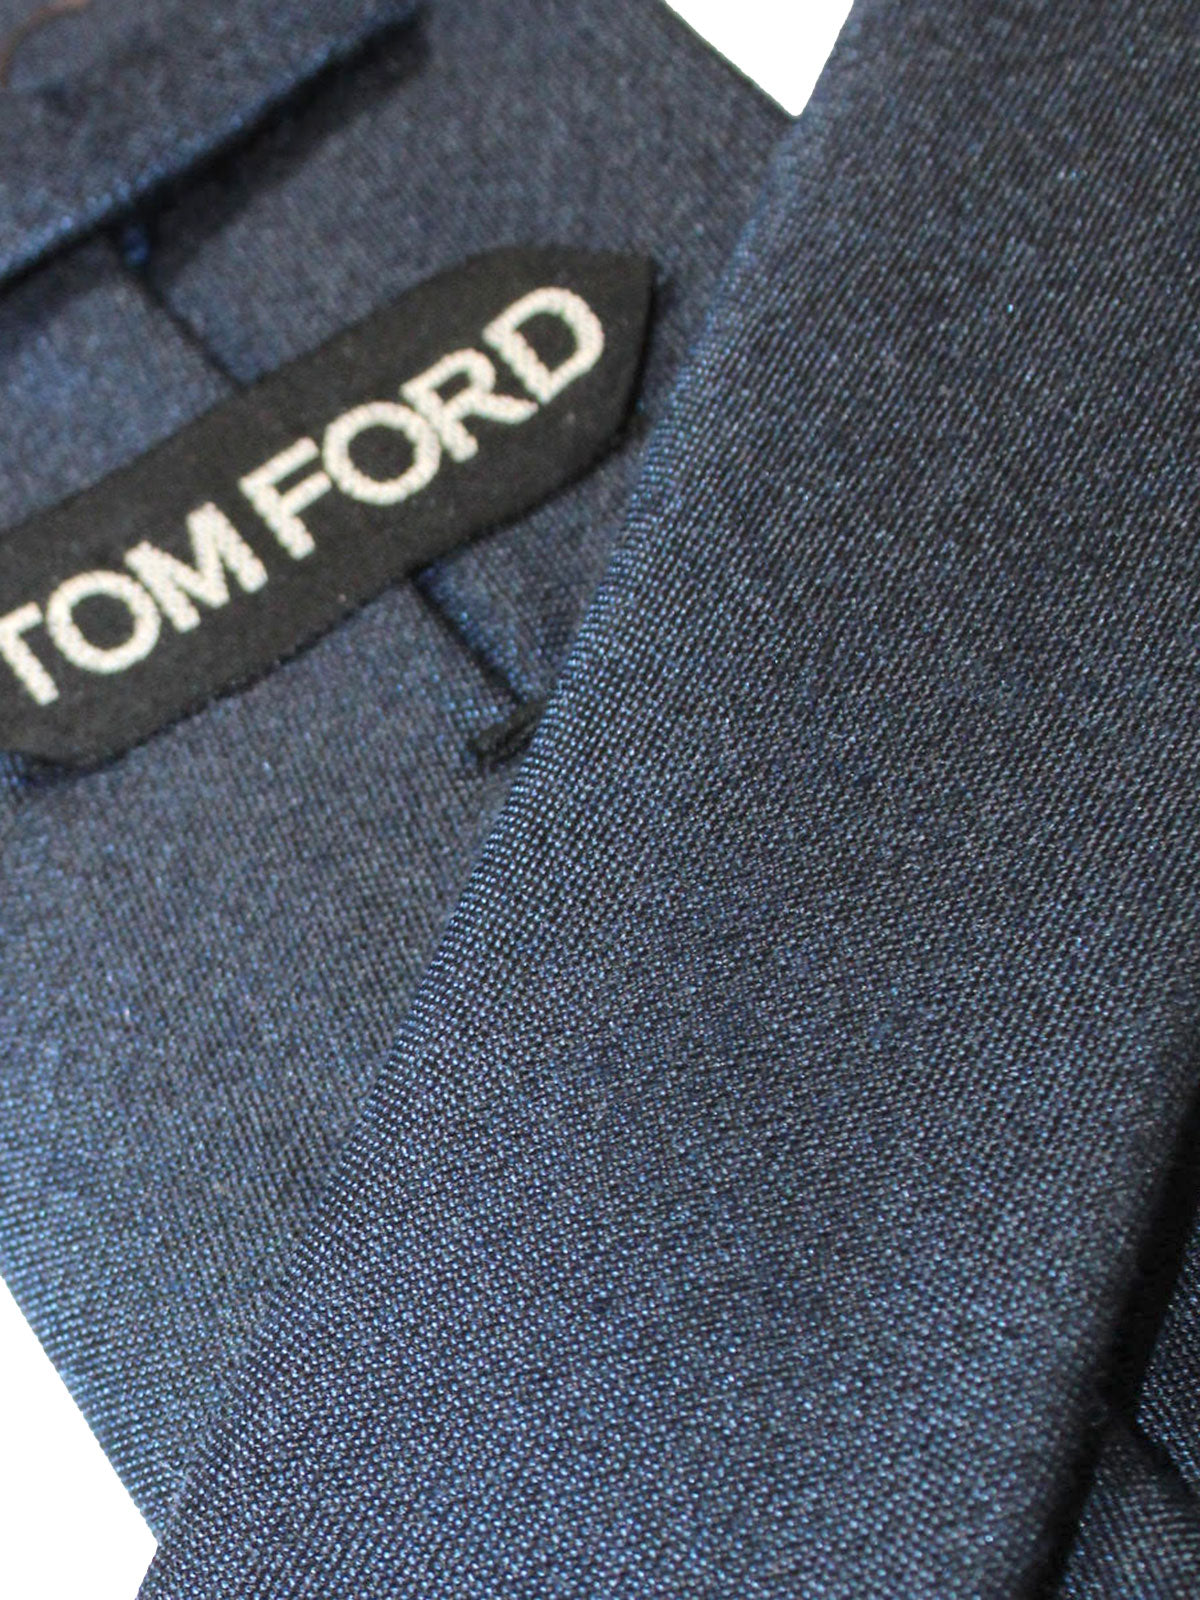 Tom Ford Tie Dark Blue Solid Design